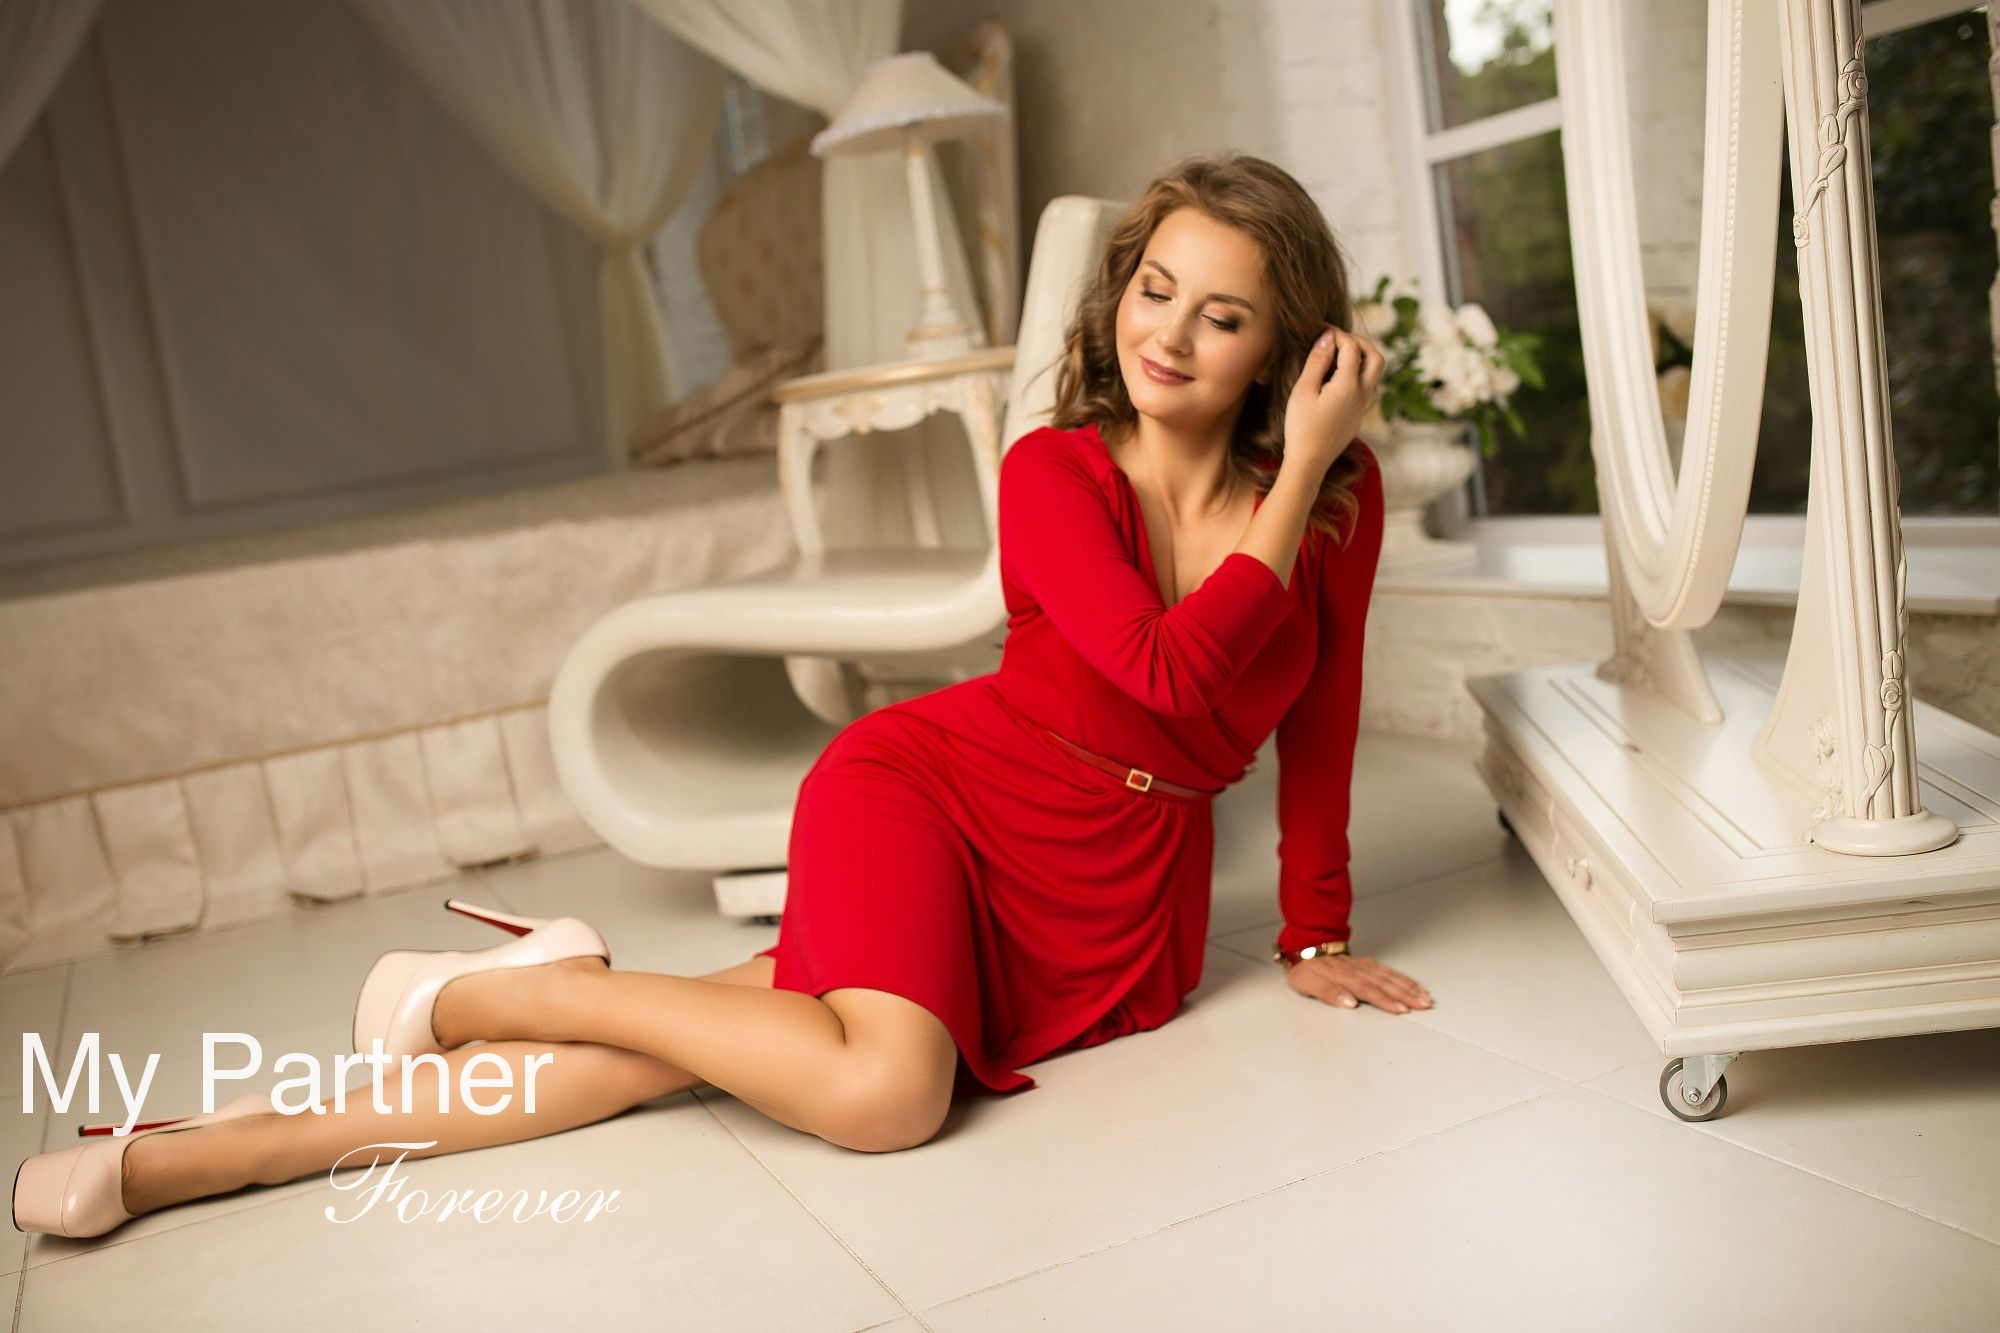 Datingsite to Meet Stunning Ukrainian Woman Nataliya from Kiev, Ukraine